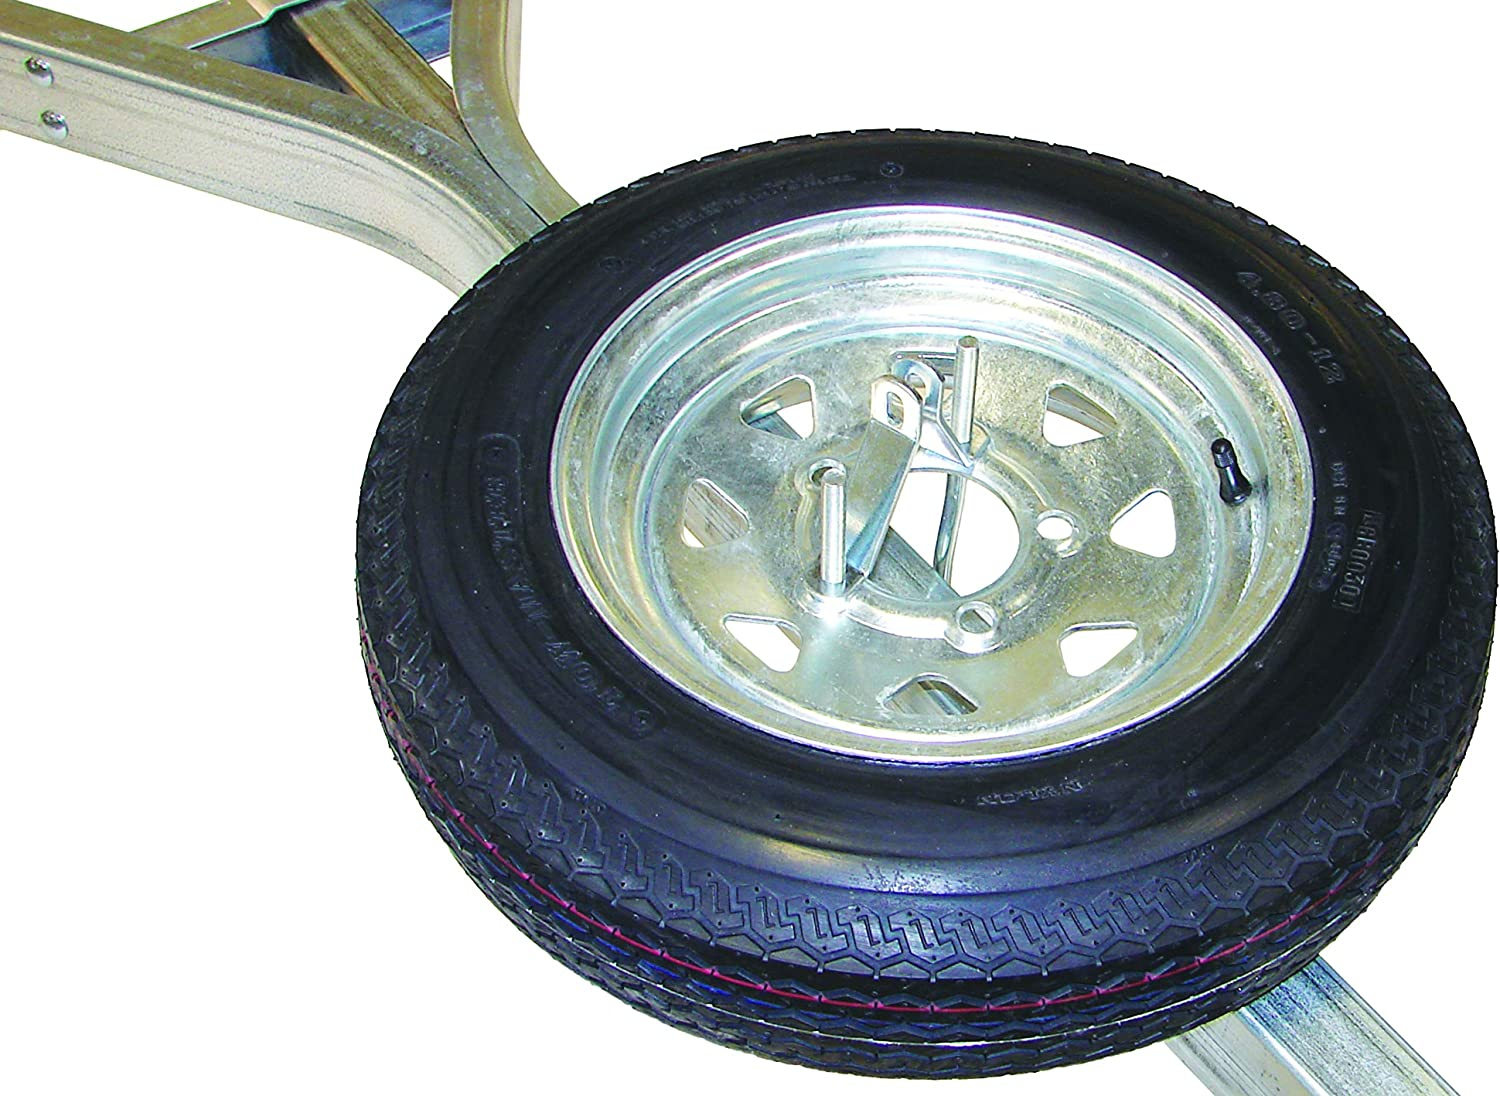 Malone Galvanized Trailer Spare Tire with Locking Attachment for MicroSport Trailer